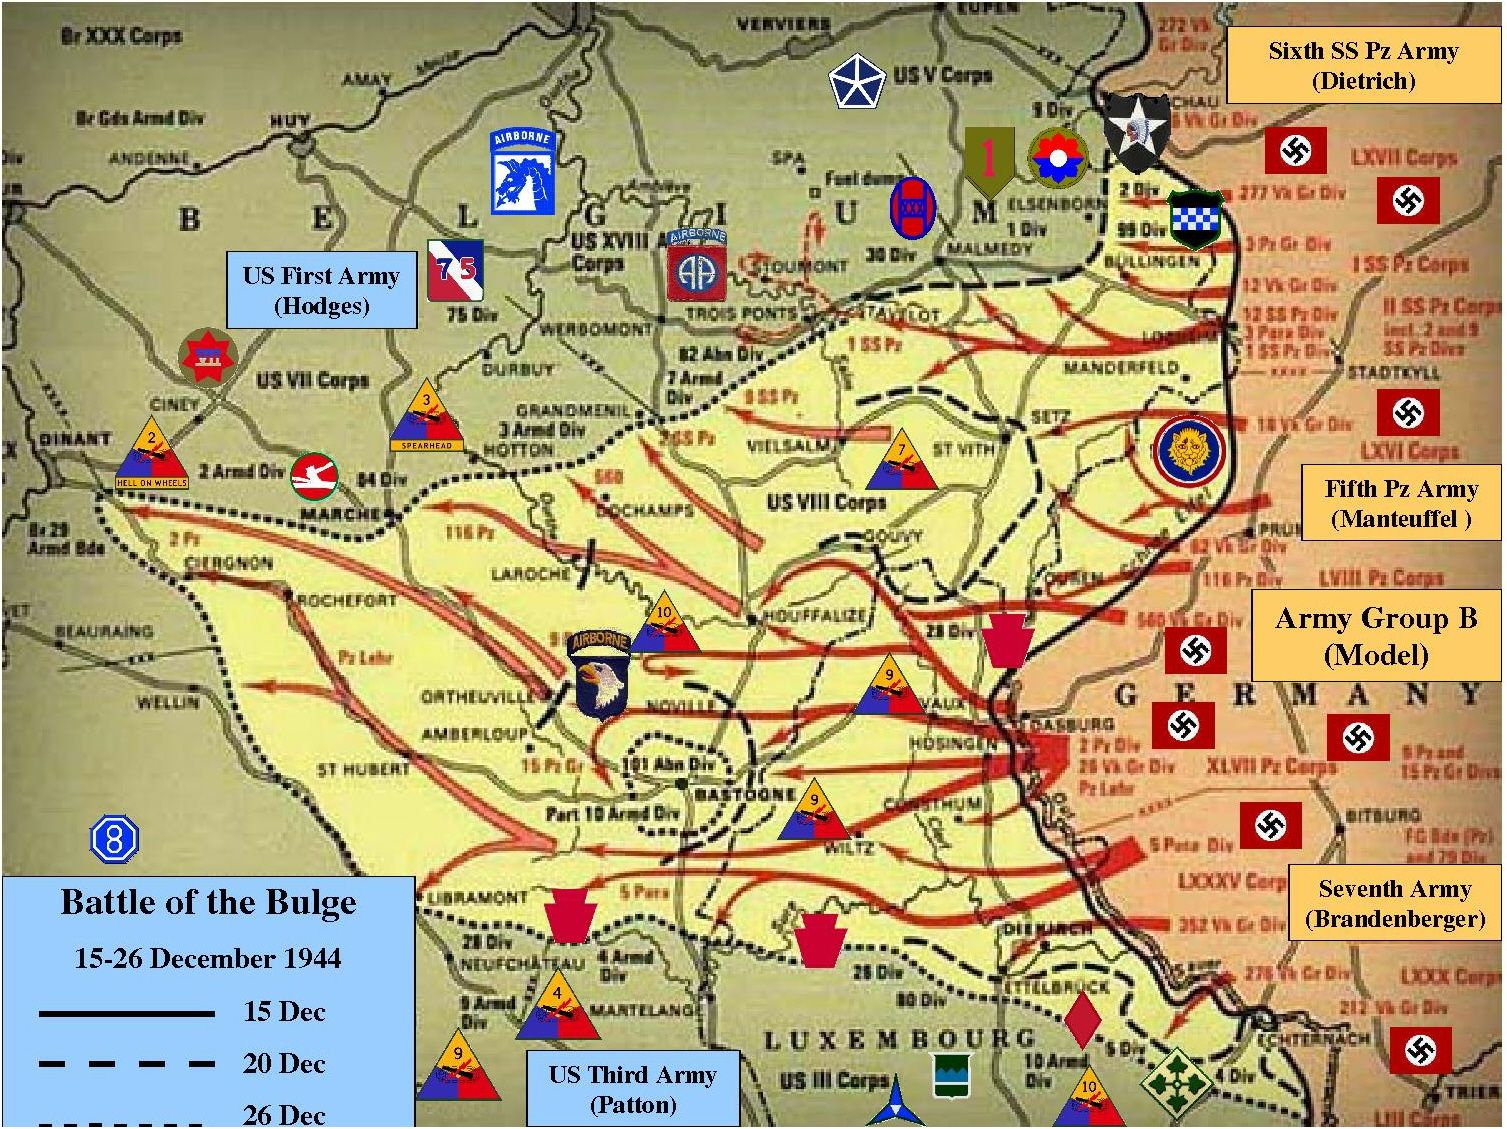 Map battle of the bulge battle of the bulge december 16 26 1944 map battle of the bulge battle of the bulge december 16 26 1944 belgium gumiabroncs Image collections